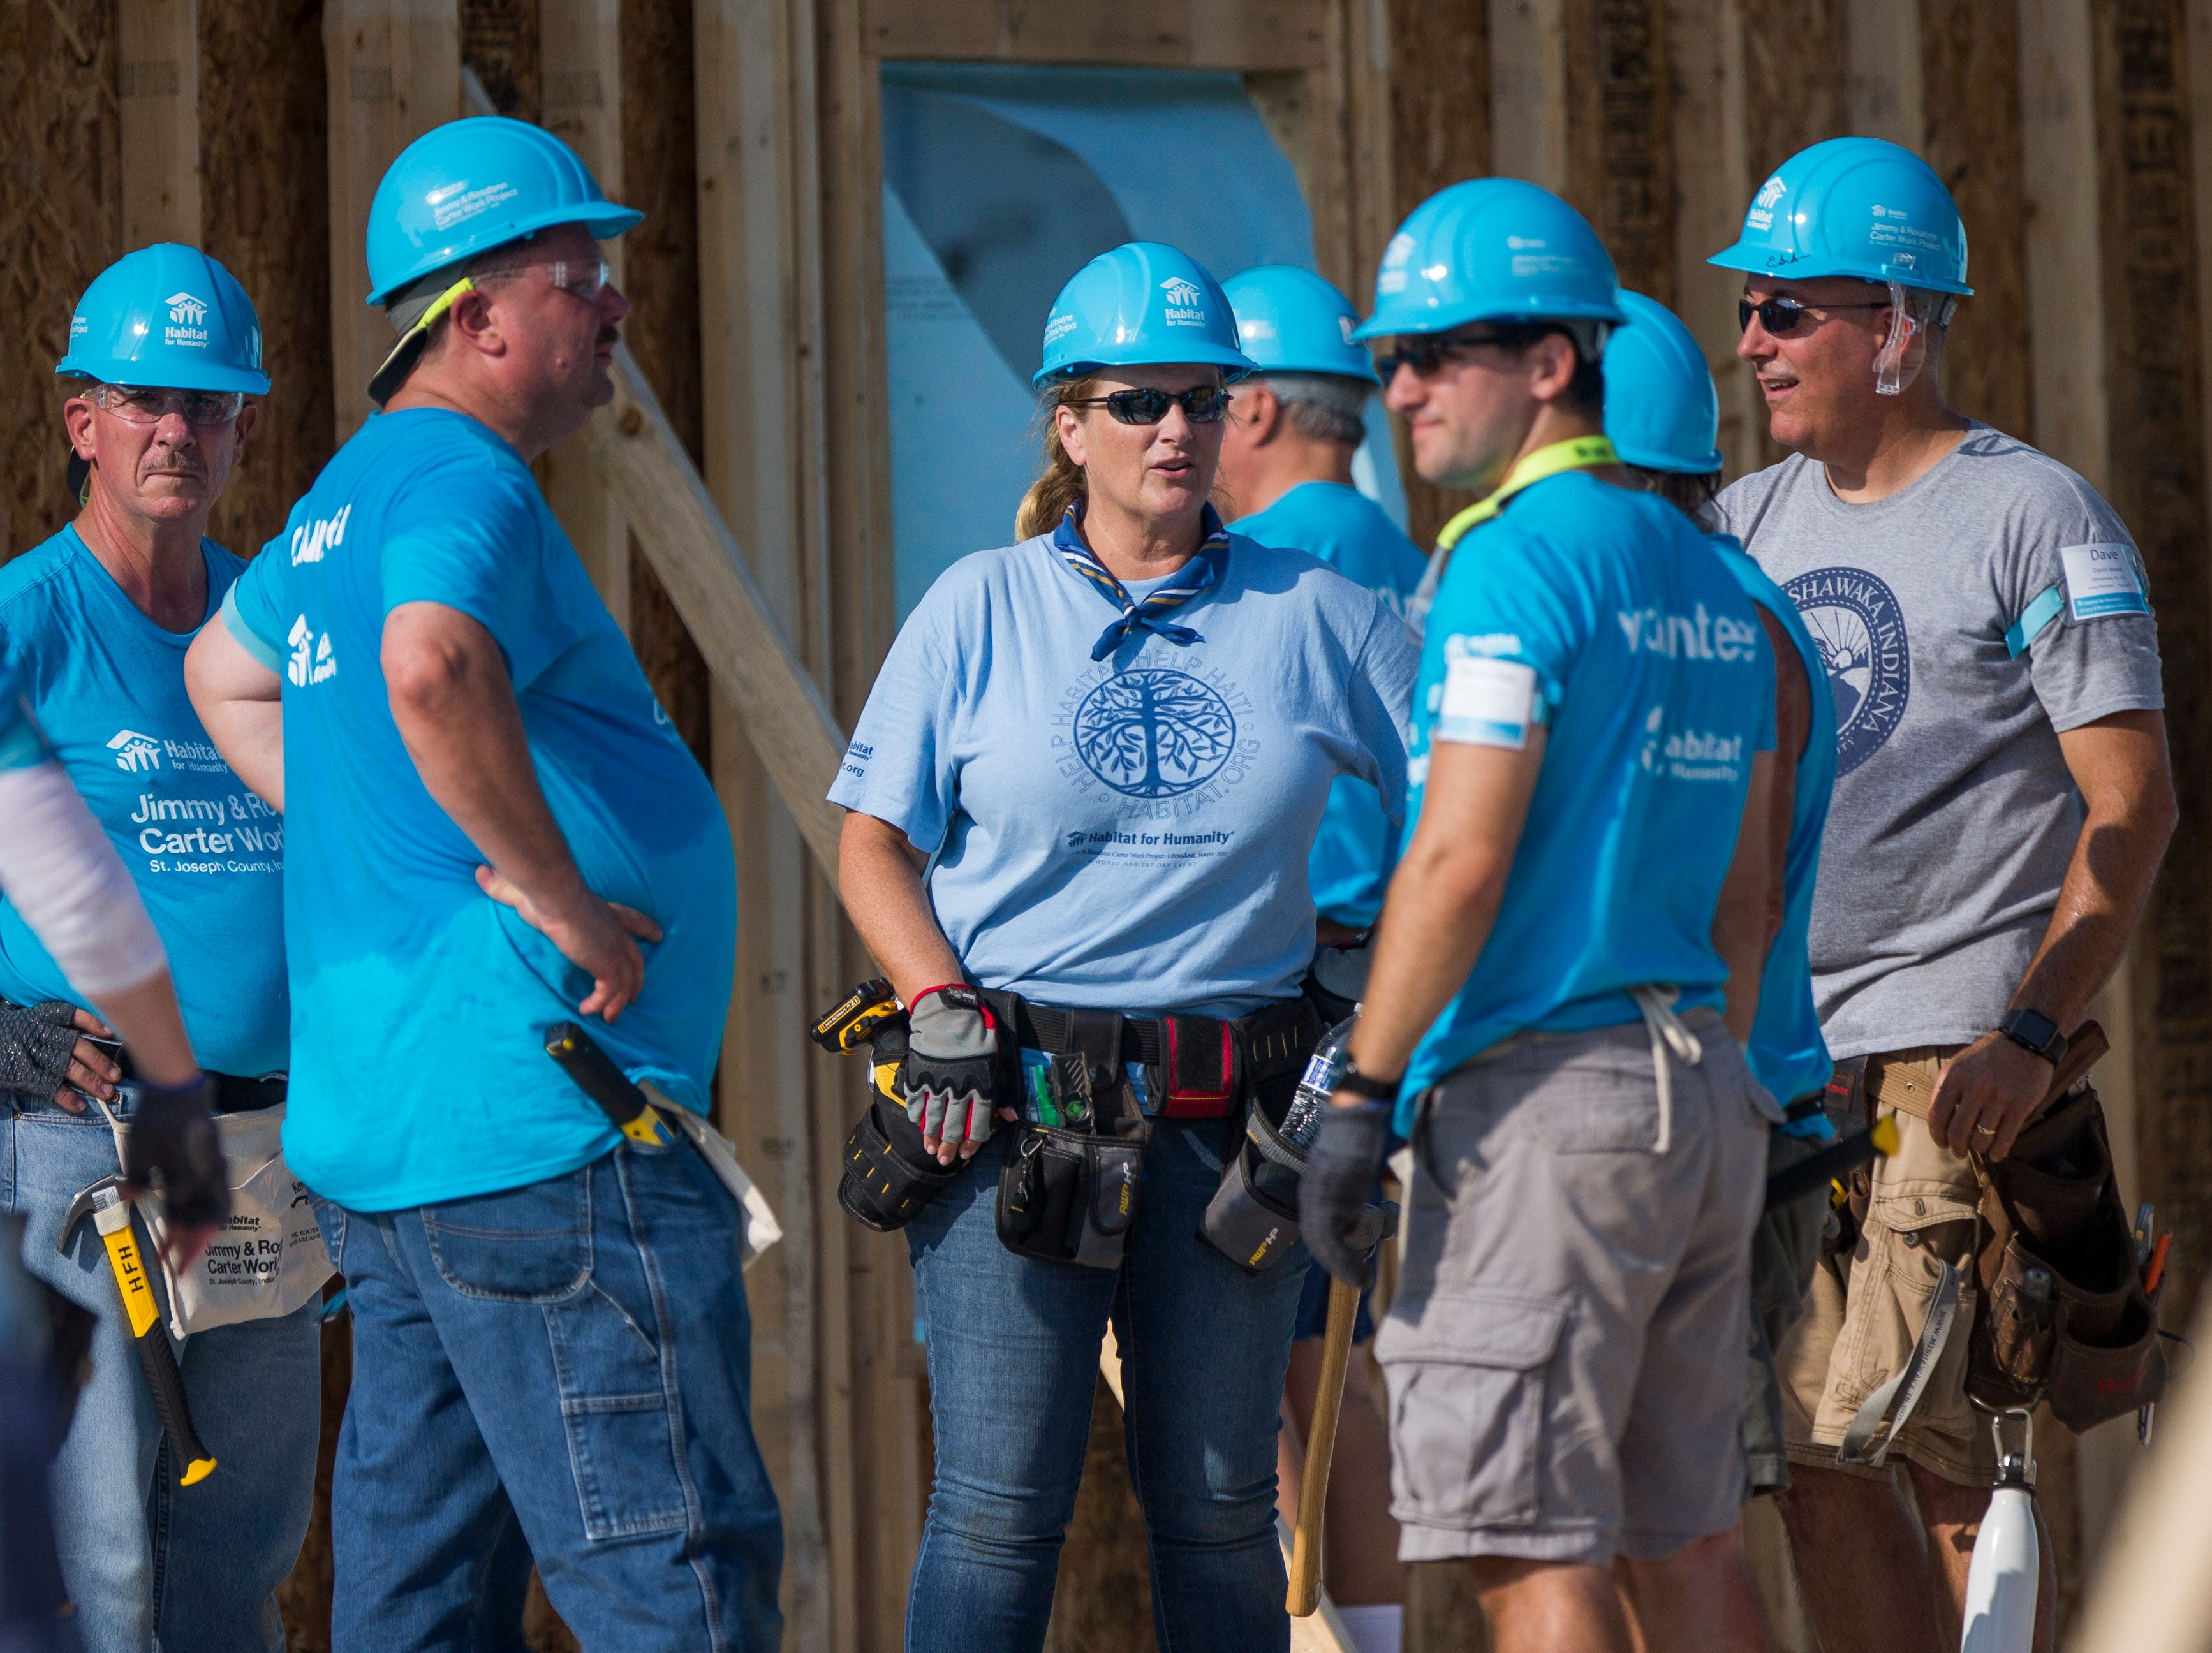 Country music star Trisha Yearwood, center, works with other volunteers on site during the first day of the weeklong Jimmy & Rosalynn Carter Work Project.